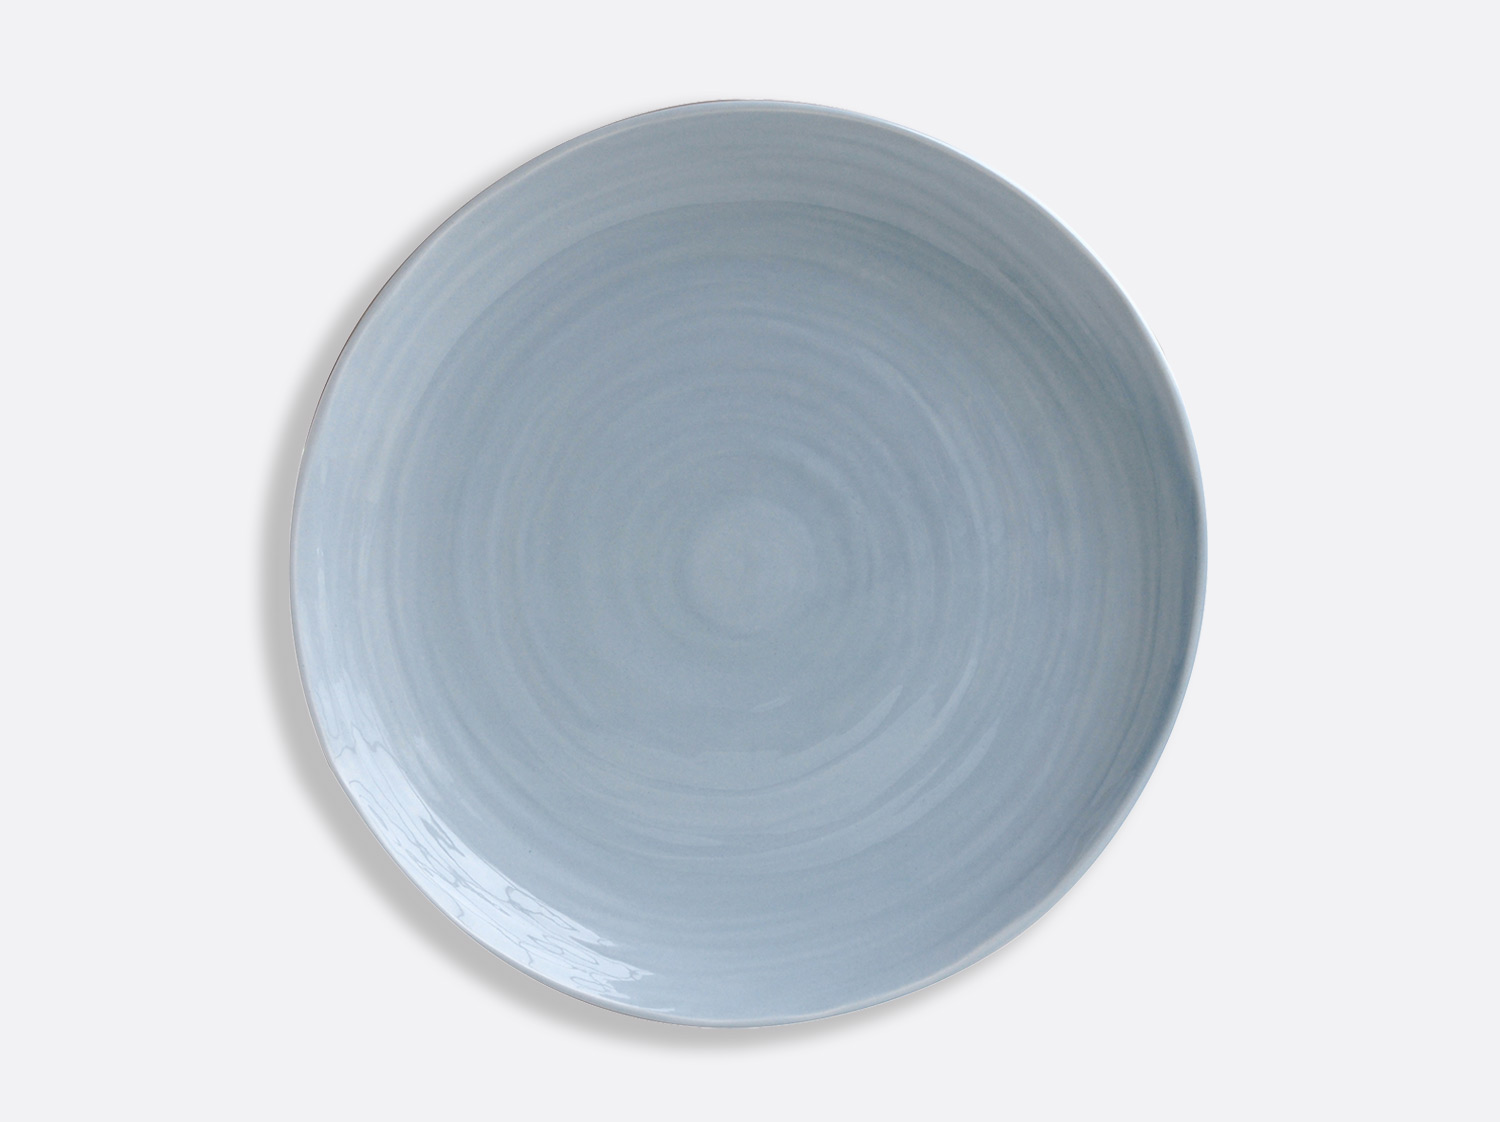 "China Blue plate 12"" of the collection Origine bleu 